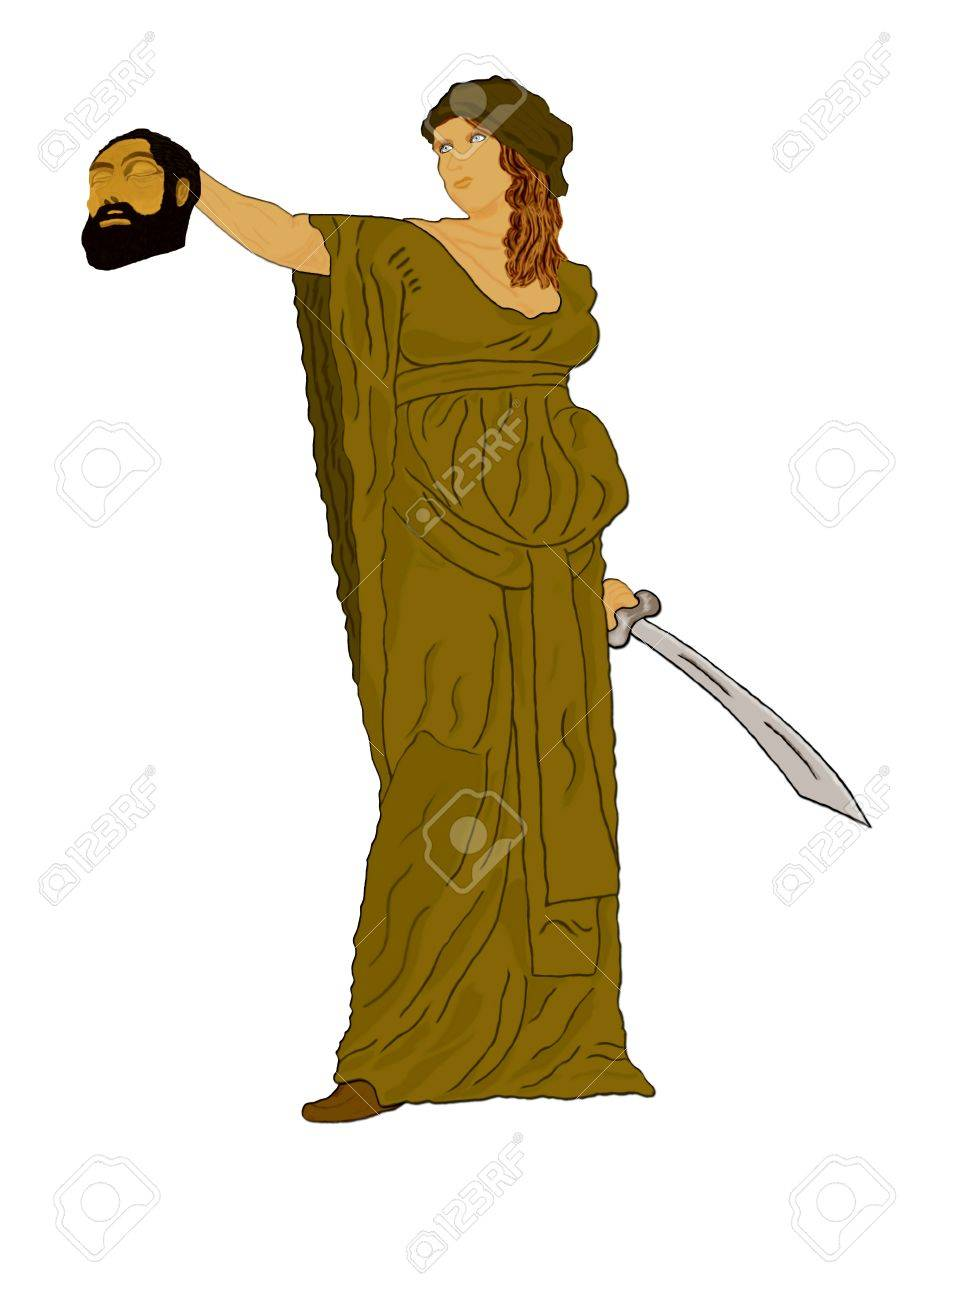 Judith holding up the head of Holofermes Stock Photo - 11008239